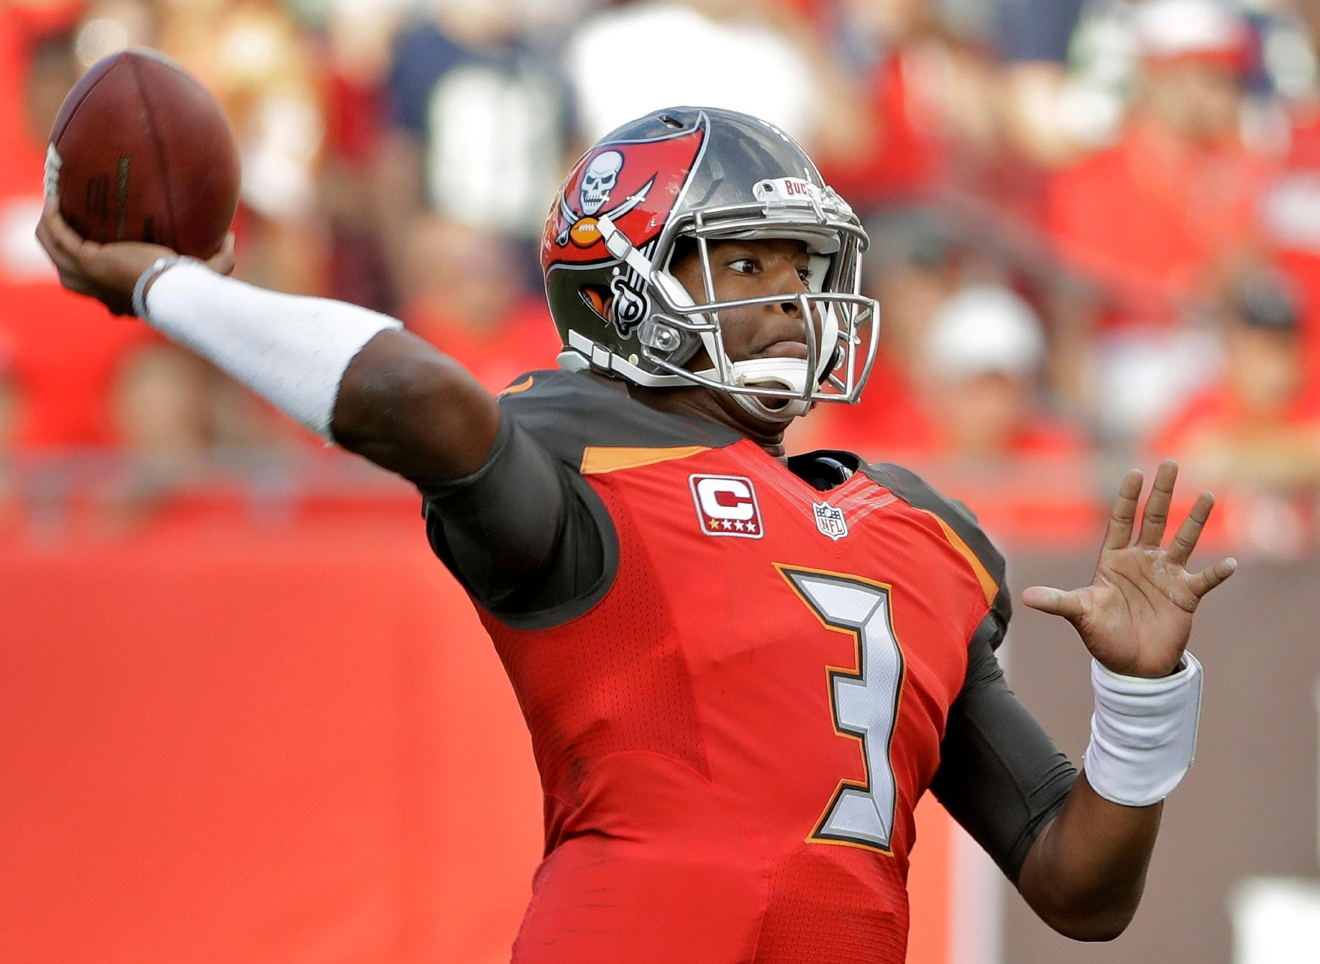 Tampa Bay Buccaneers quarterback Jameis Winston (3) throws a pass against the Seattle Seahawks during the first quarter of an NFL football game Sunday, Nov. 27, 2016, in Tampa, Fla. (AP Photo/Chris O'Meara)